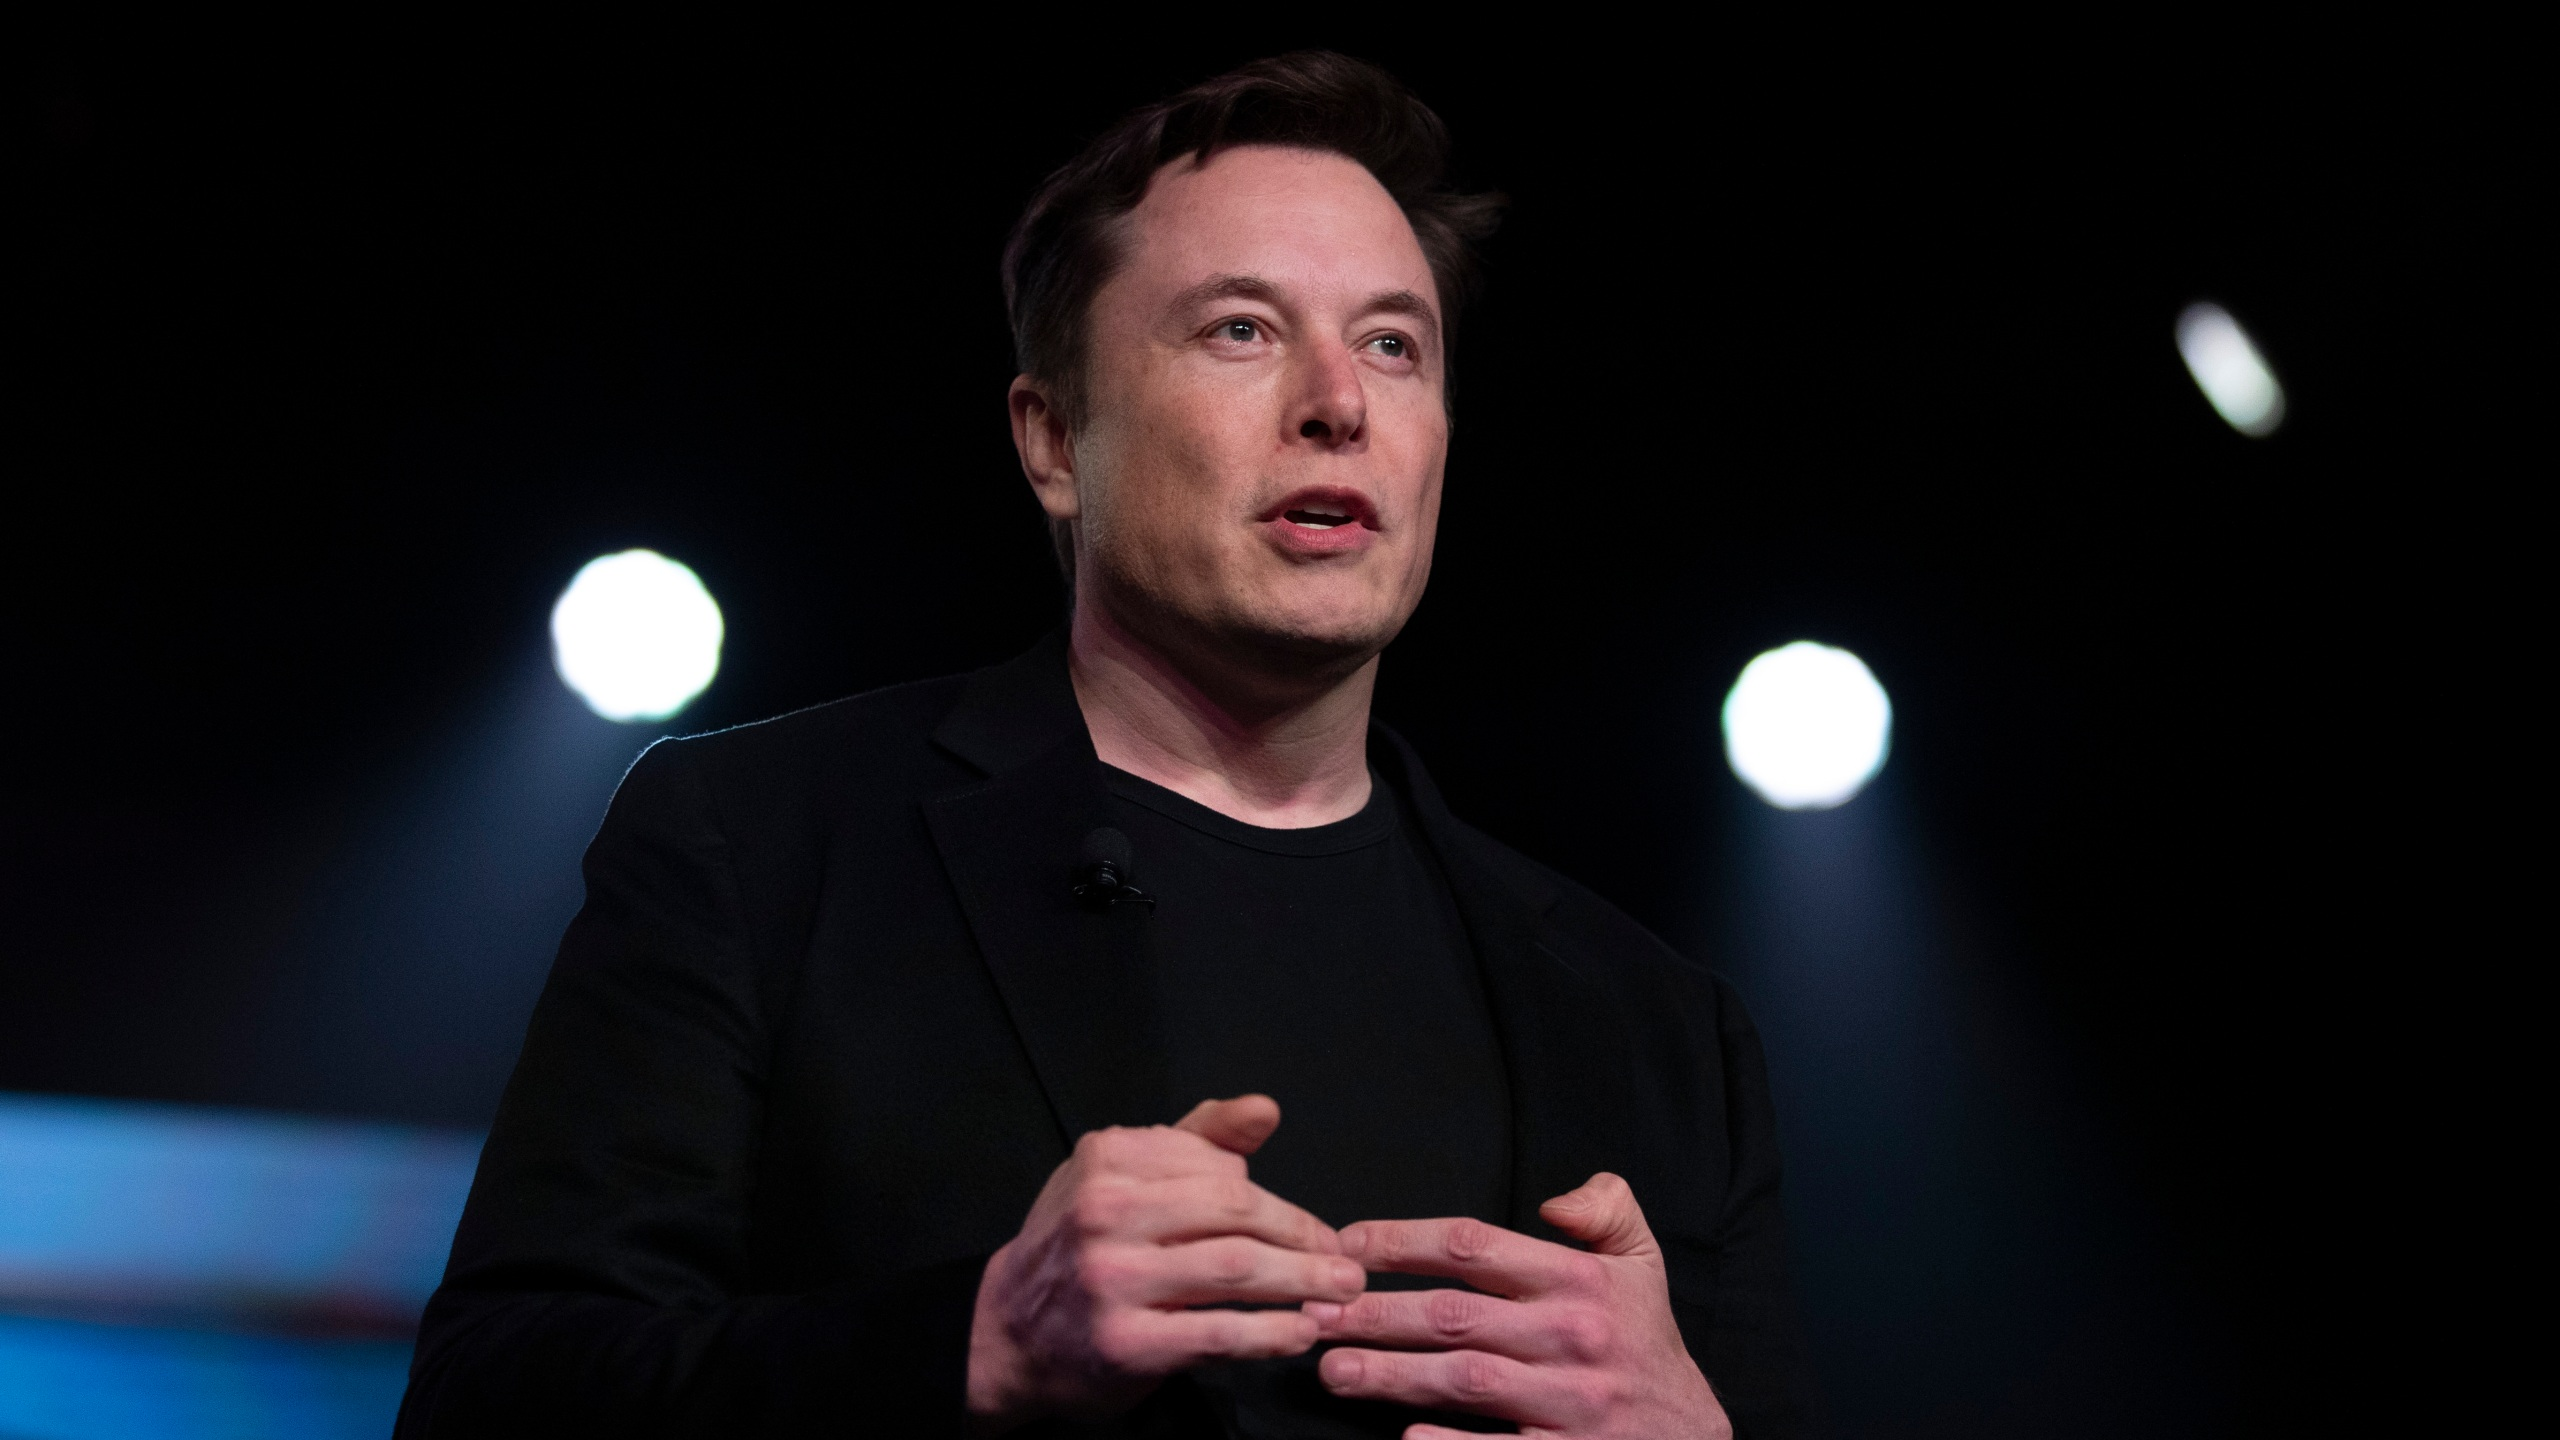 In this March 14, 2019, file photo, Tesla CEO Elon Musk speaks before unveiling the Model Y at the company's design studio in Hawthorne, Calif. (AP Photo/Jae C. Hong, File)